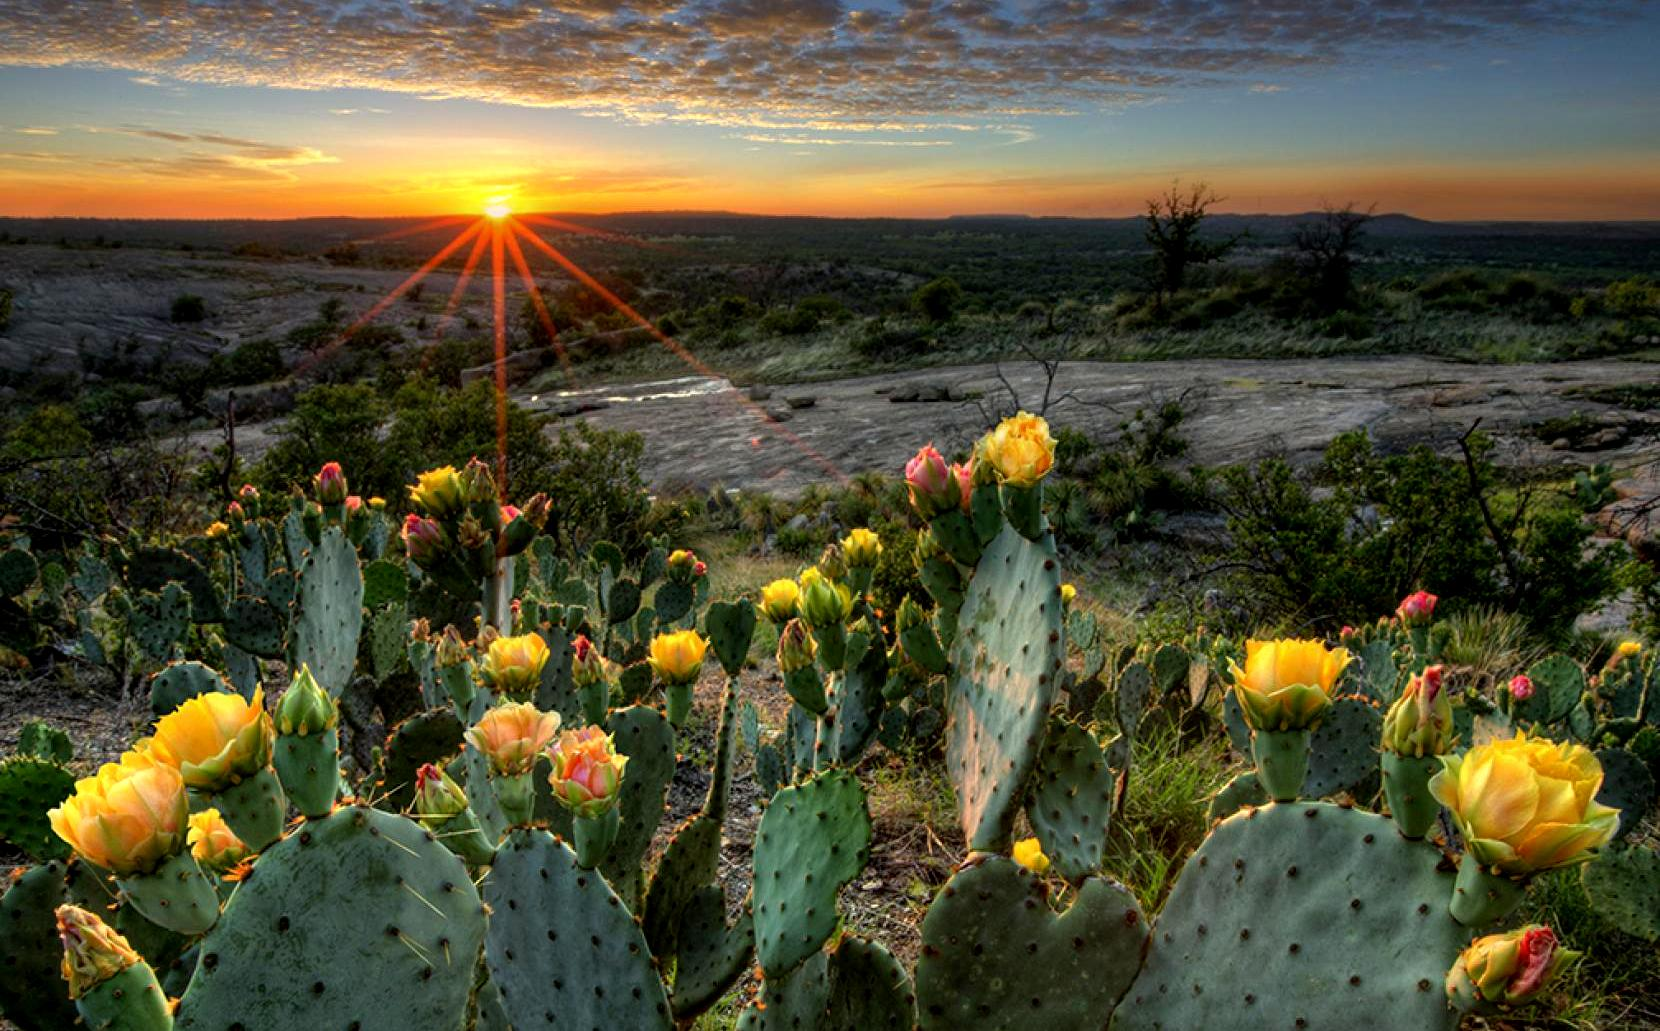 Image%20result%20for%20cactus%20flower%20clap